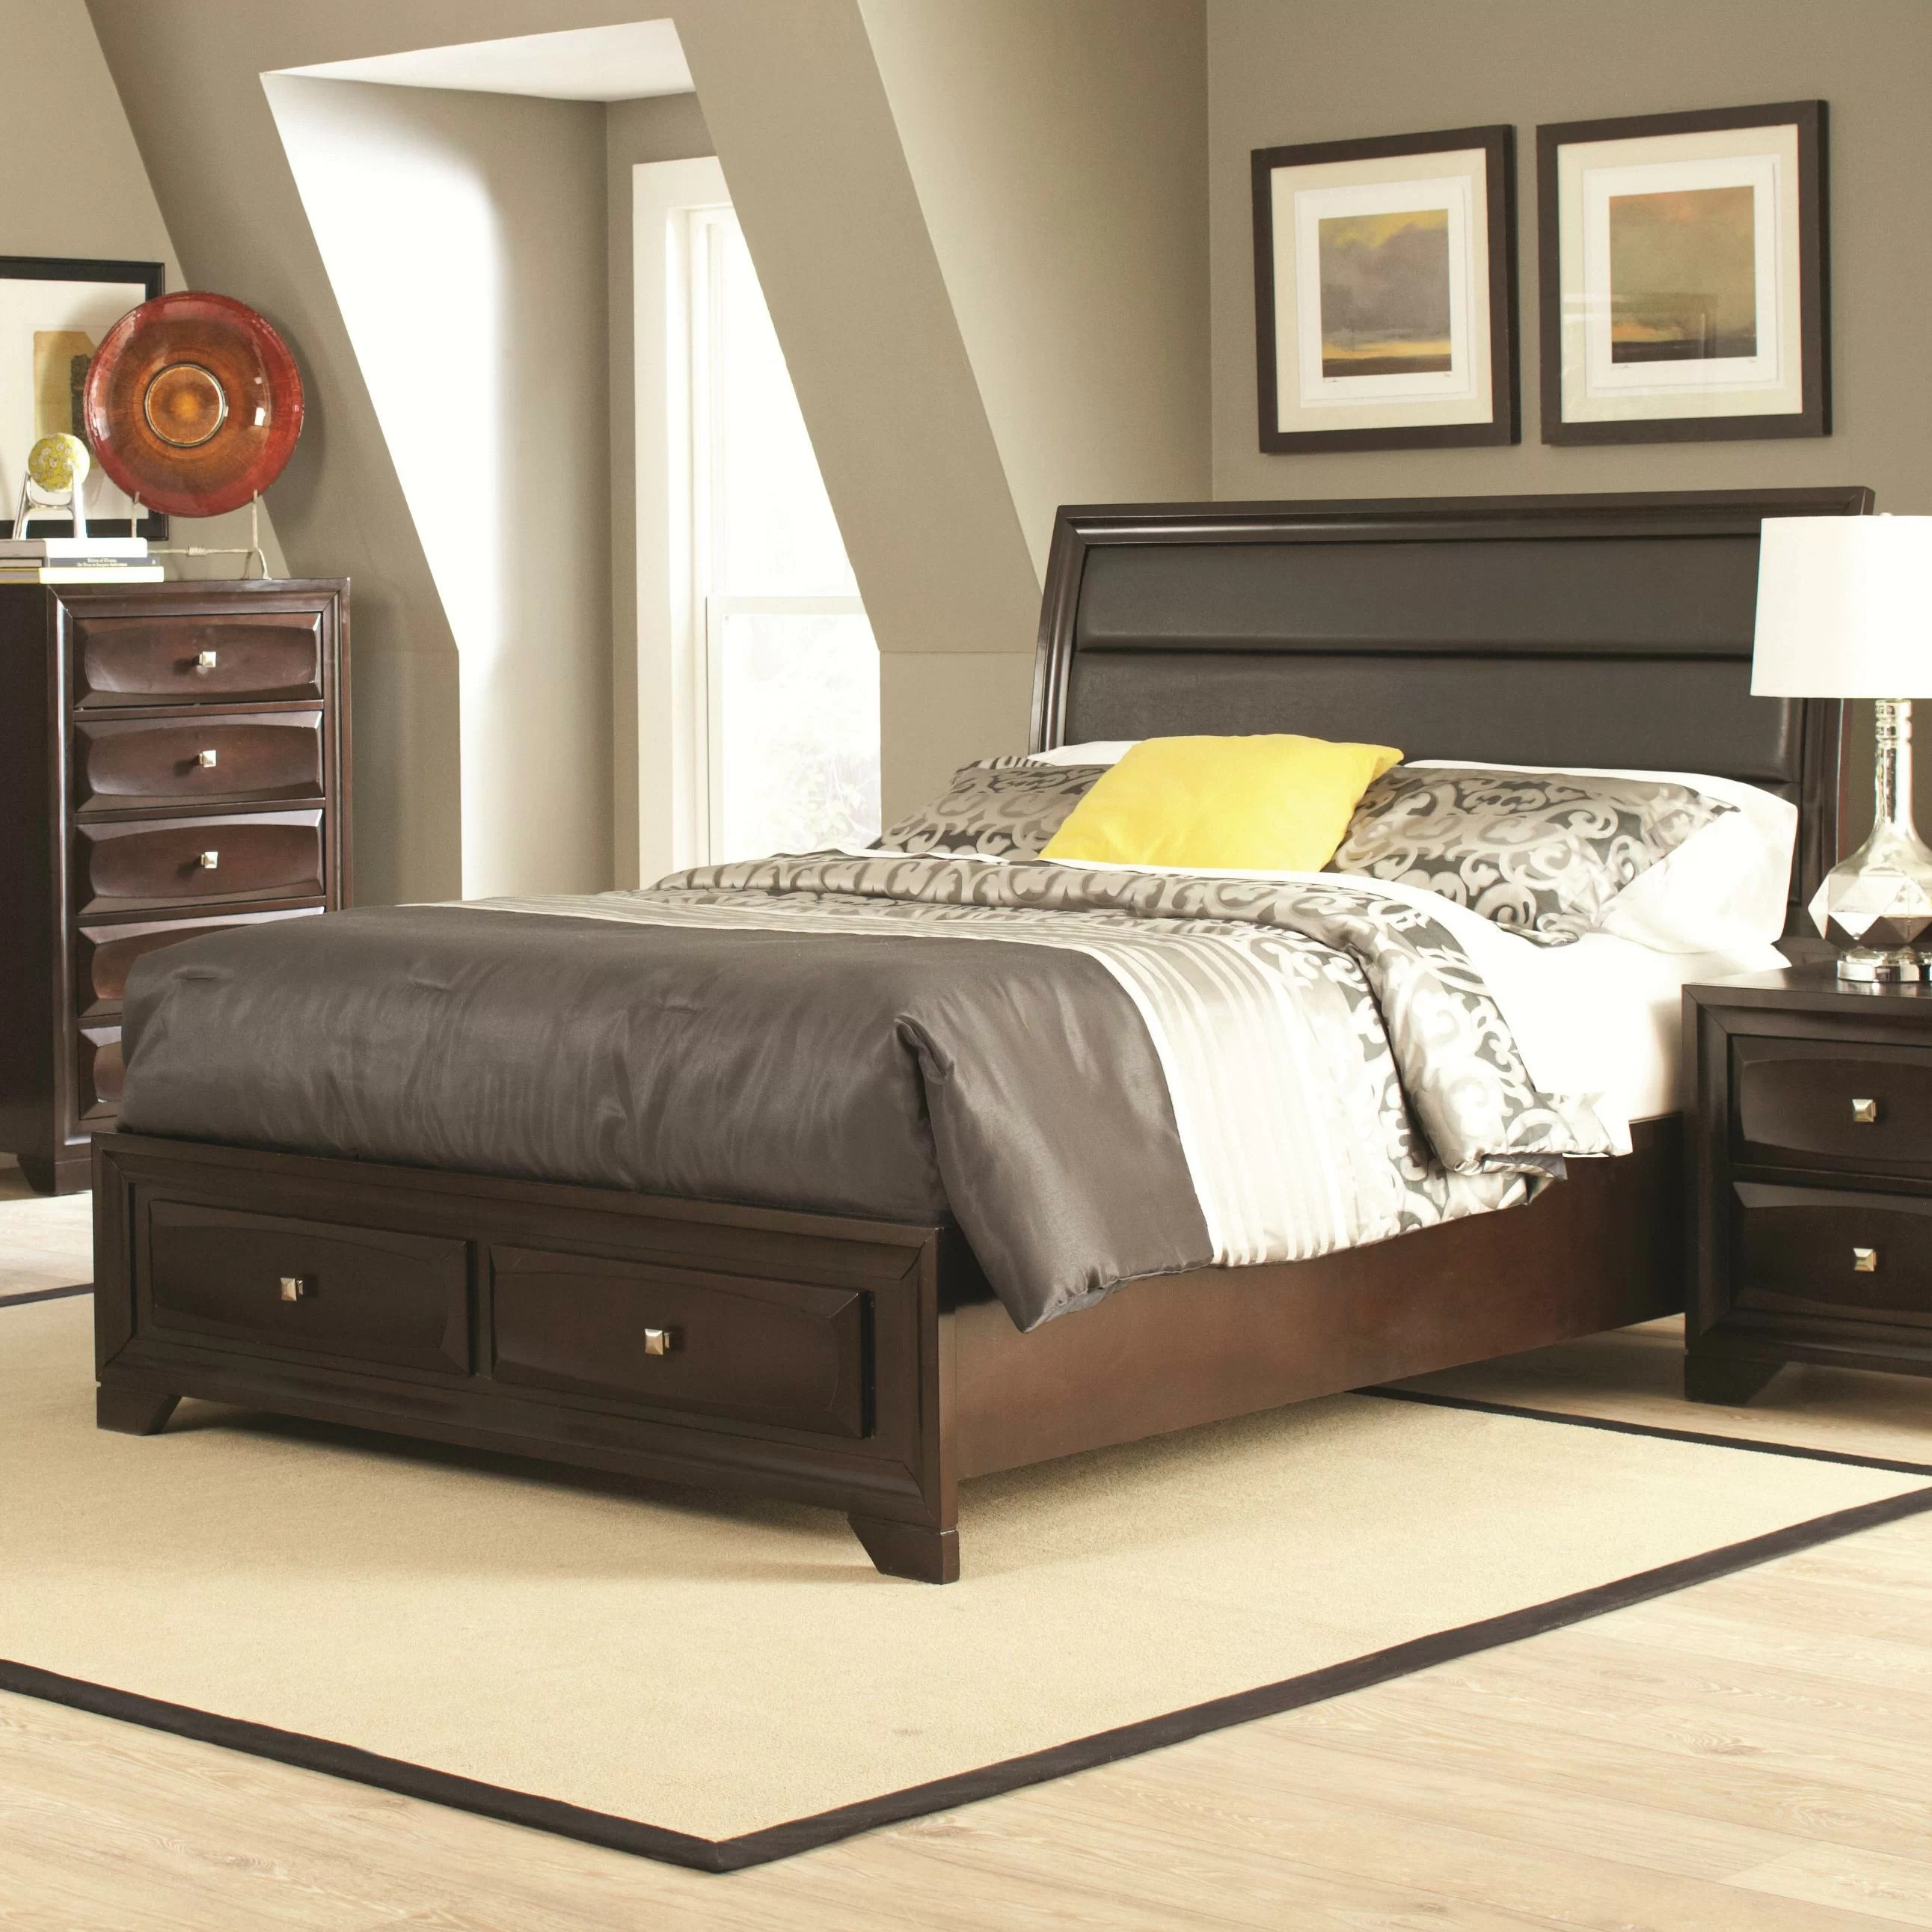 Bedding Storage Wasserhund Upholstered Storage Panel Bed